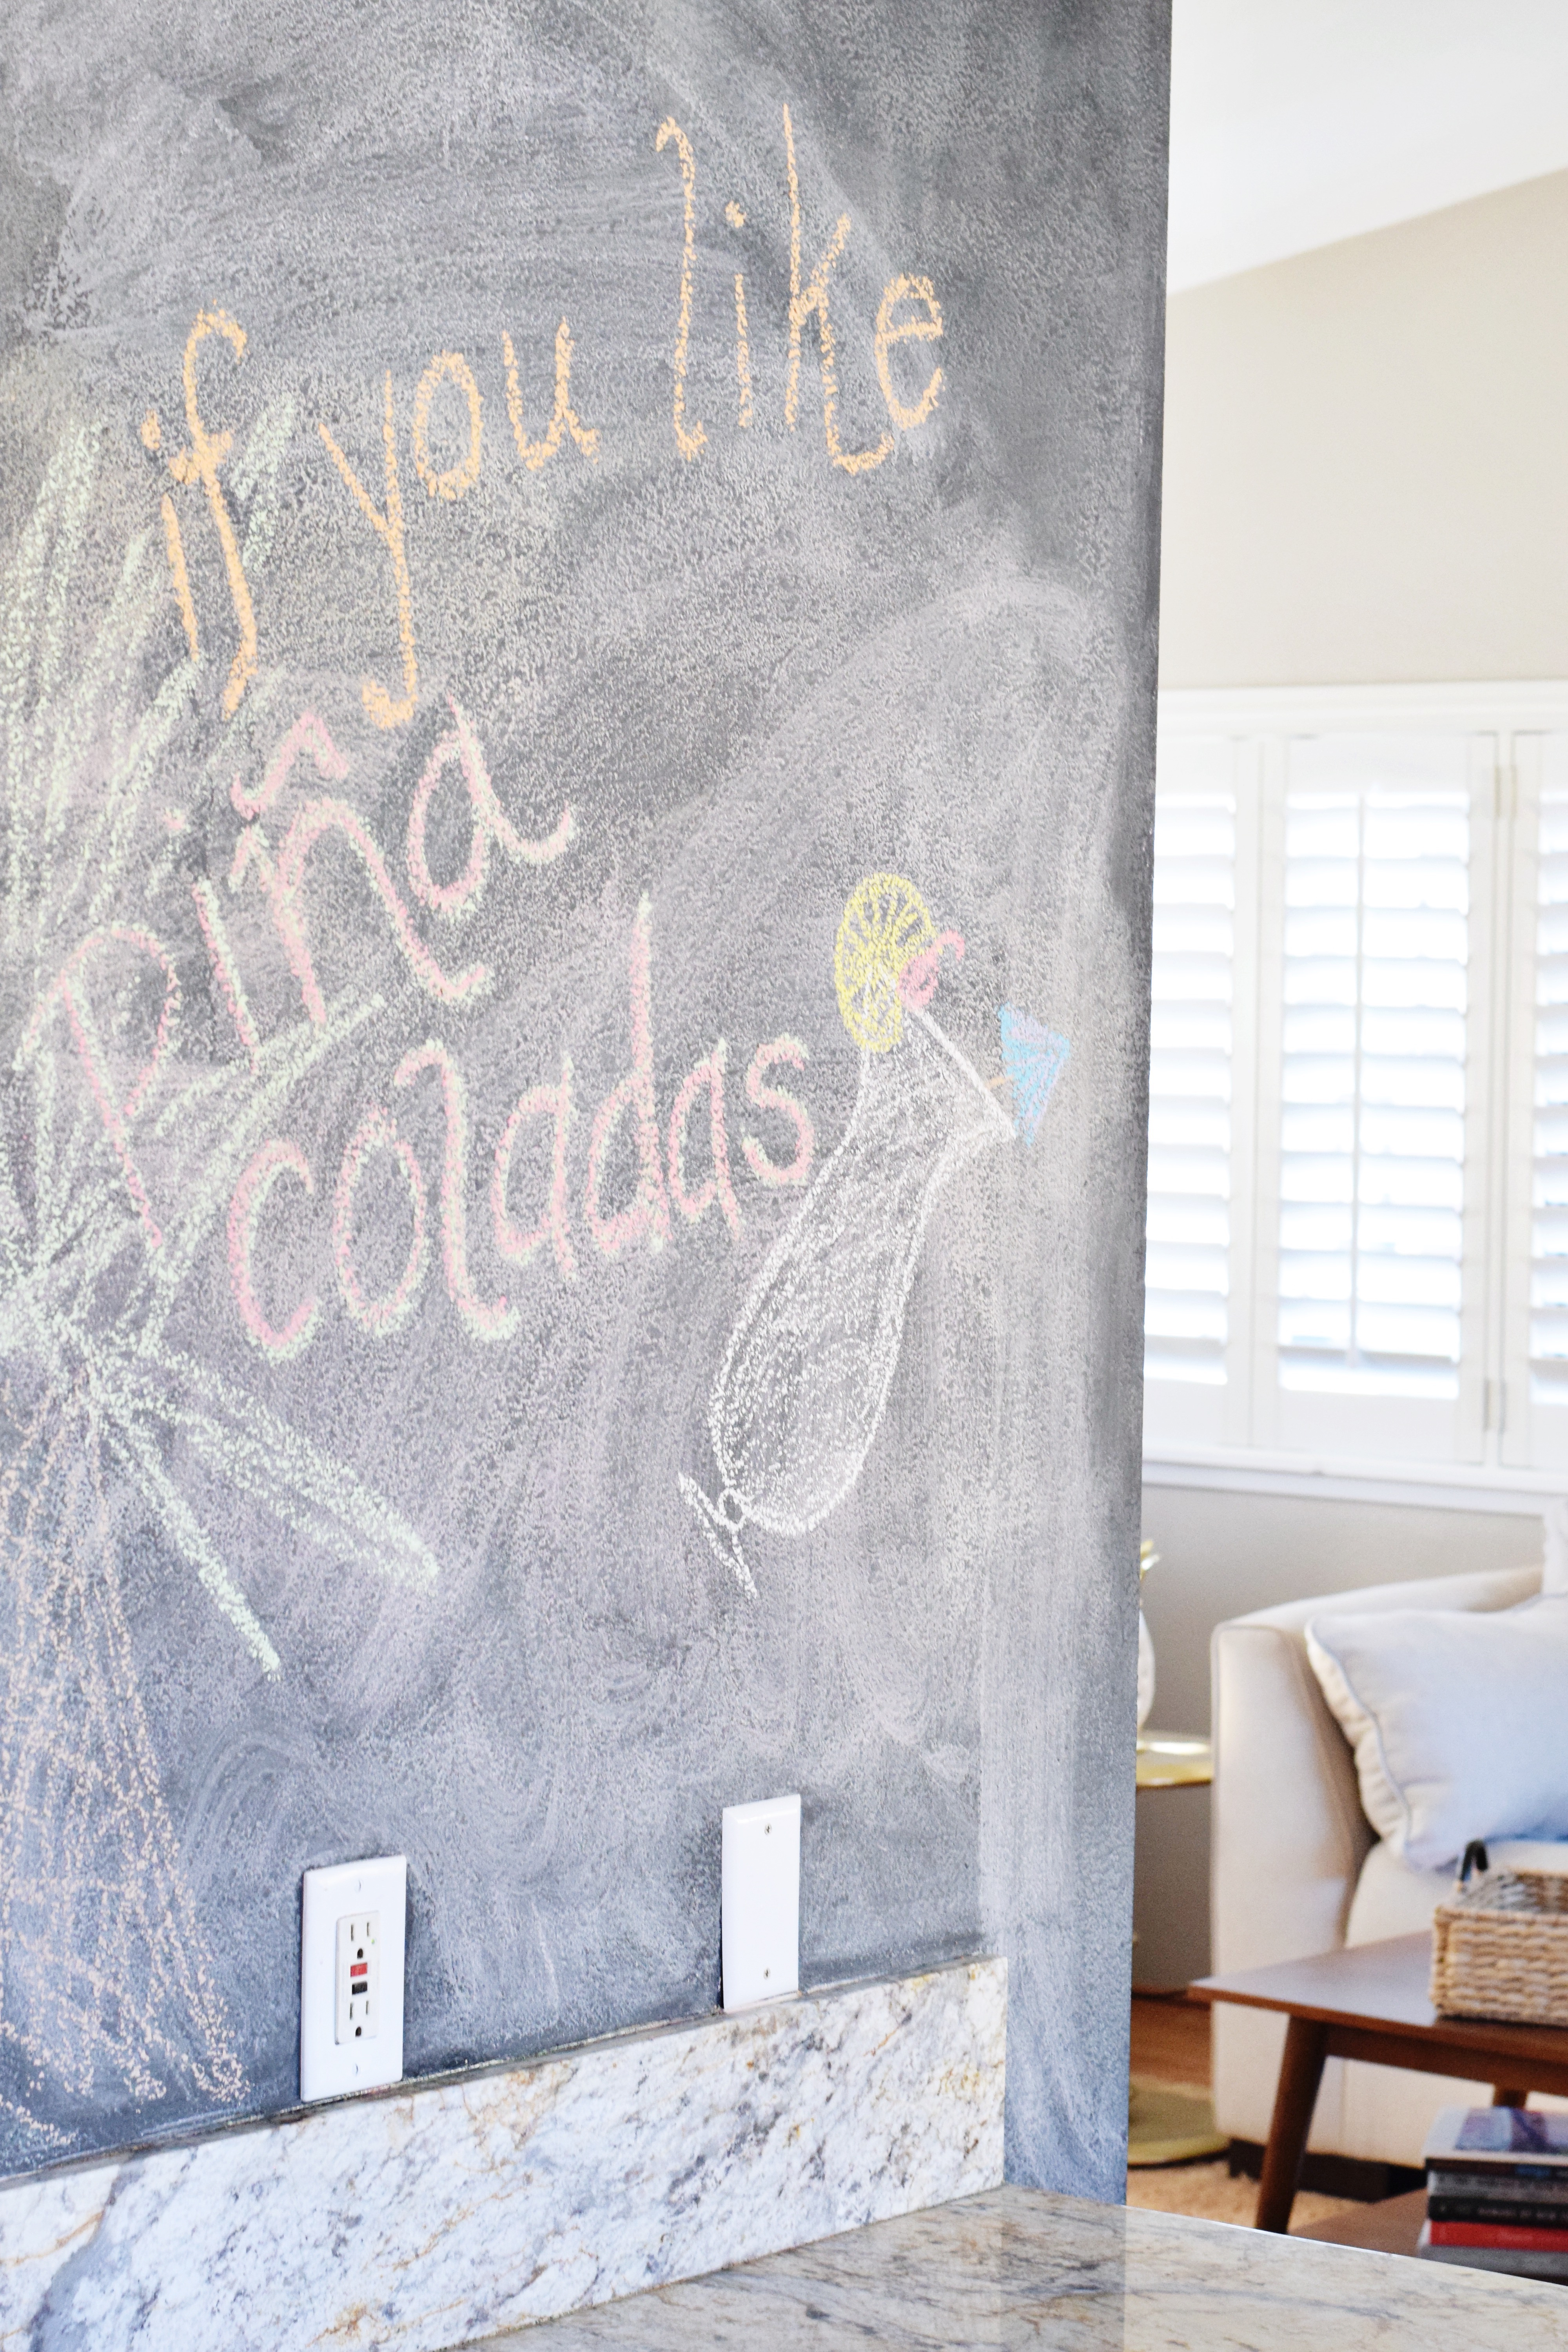 Tropical Kitchen - Chalkboard Wall - Hawaiian Home Feature on Apartment Therapy - CommuniKait